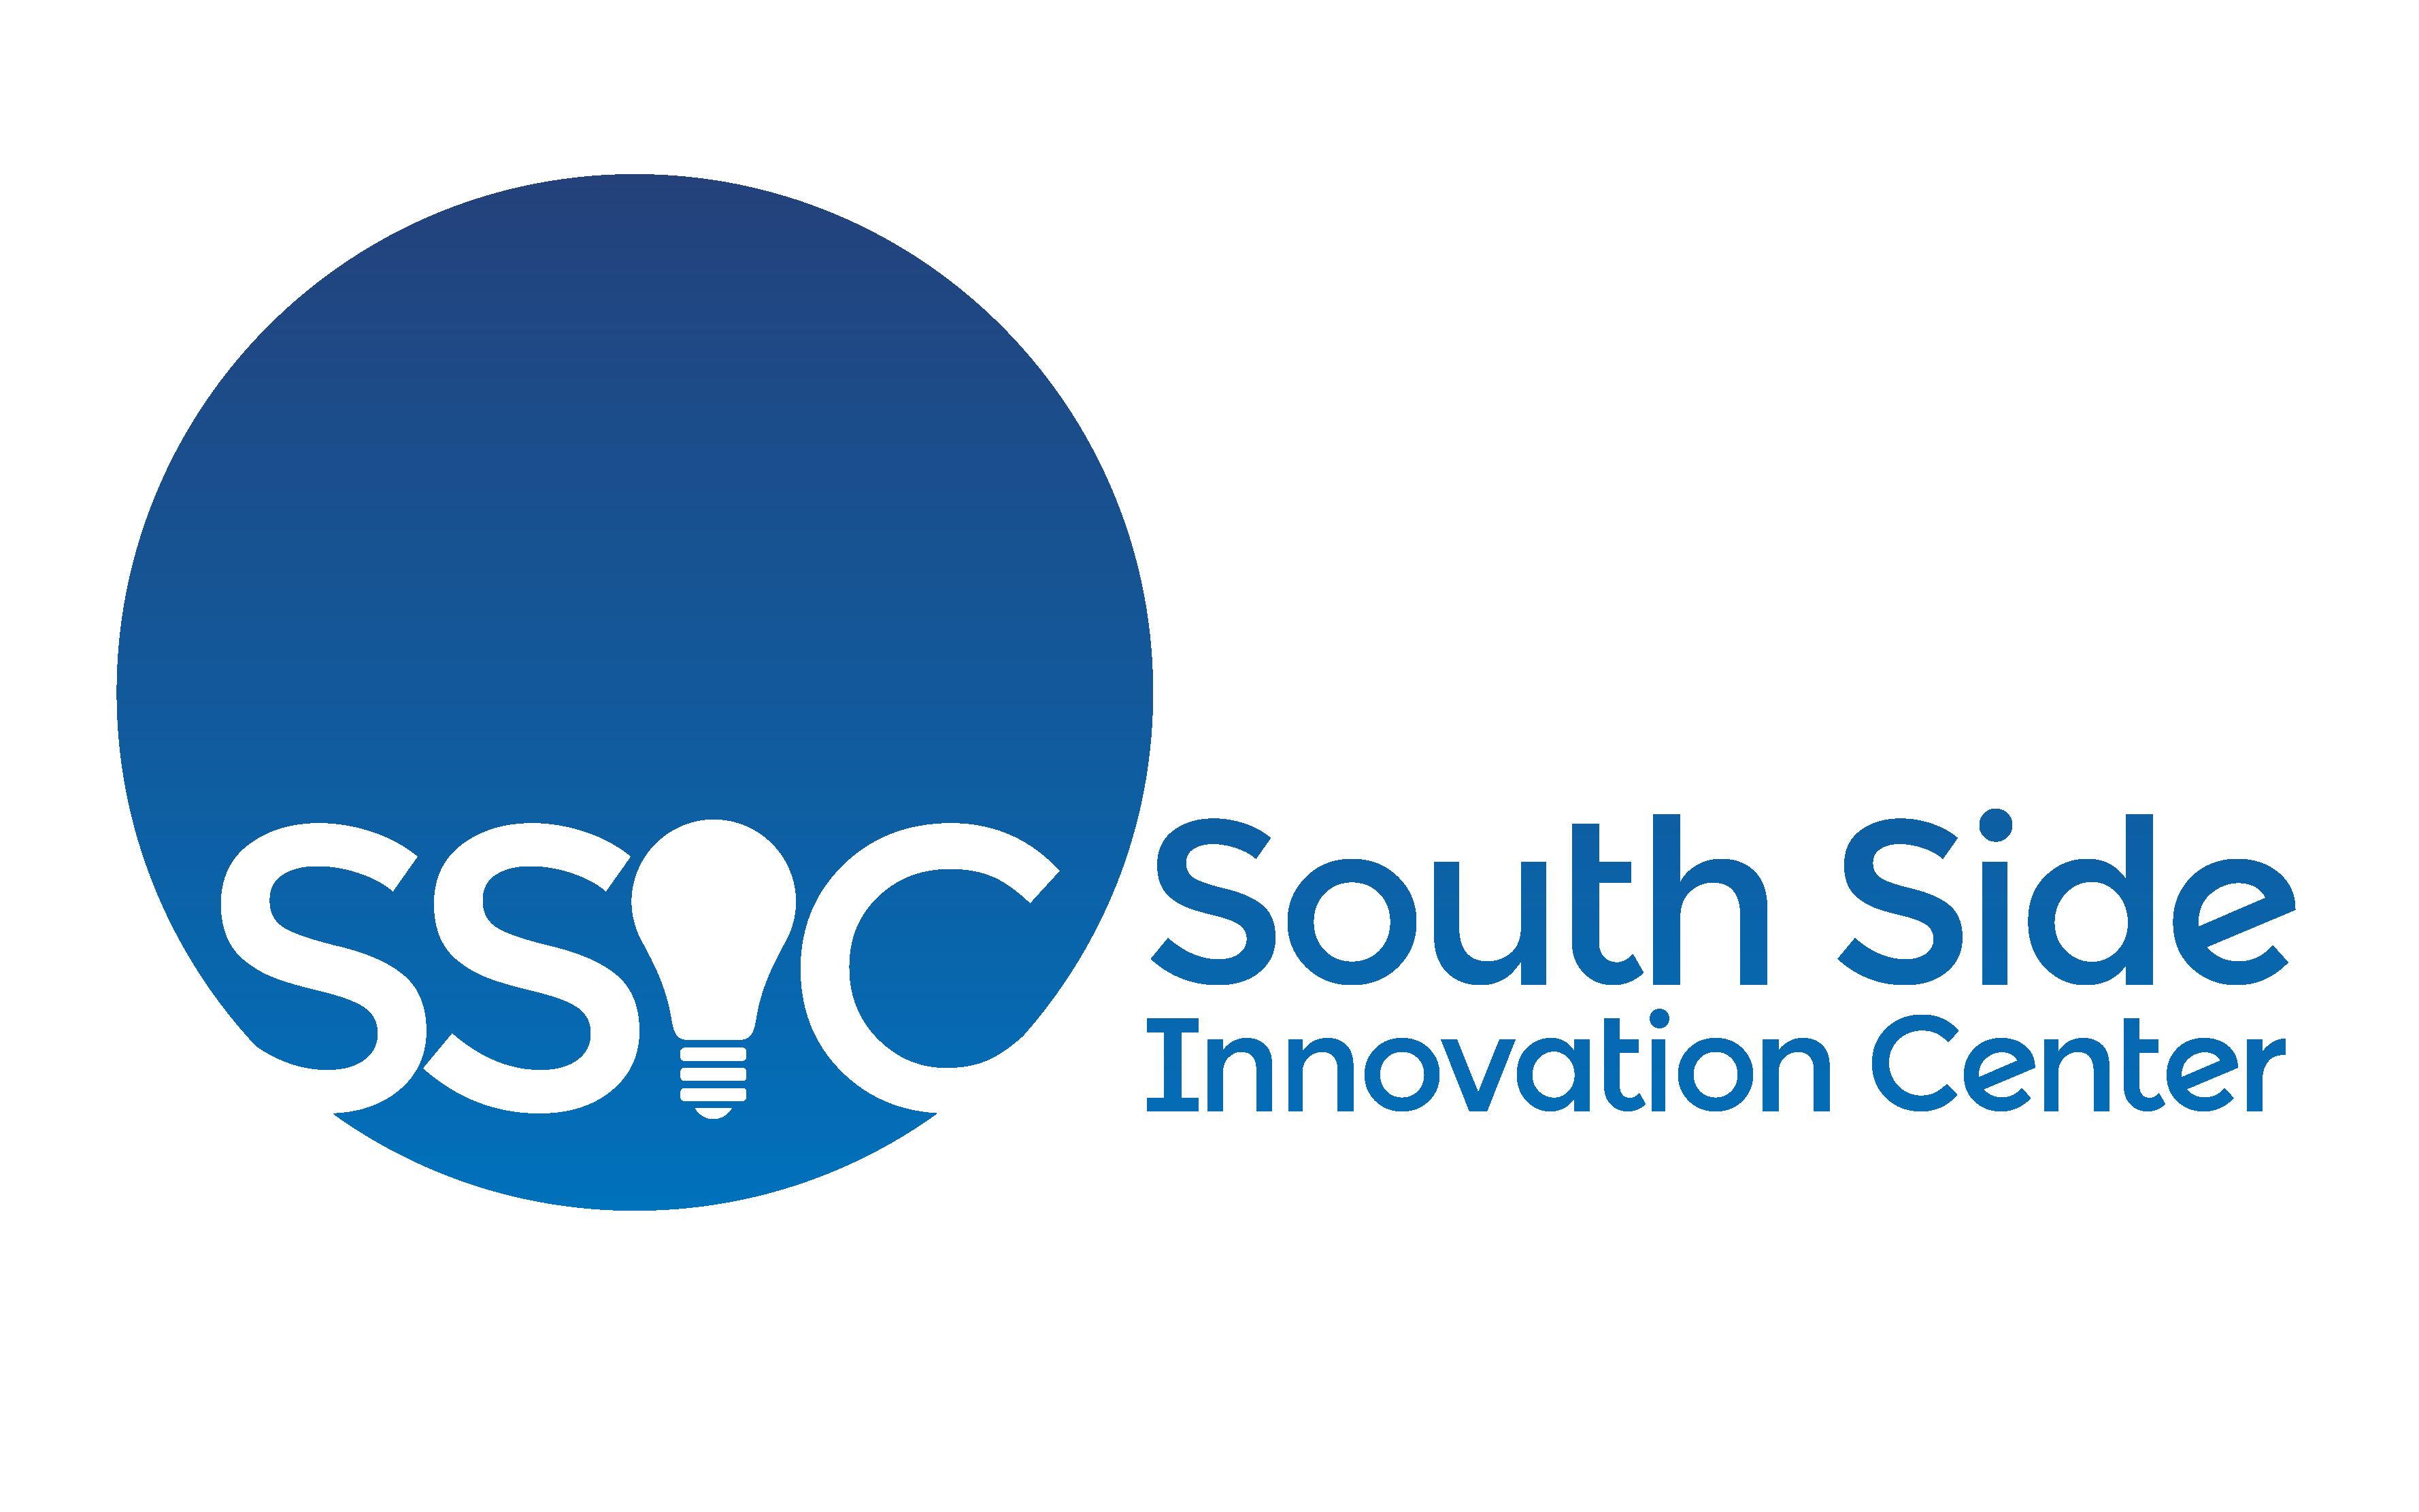 South Side Innovation Center